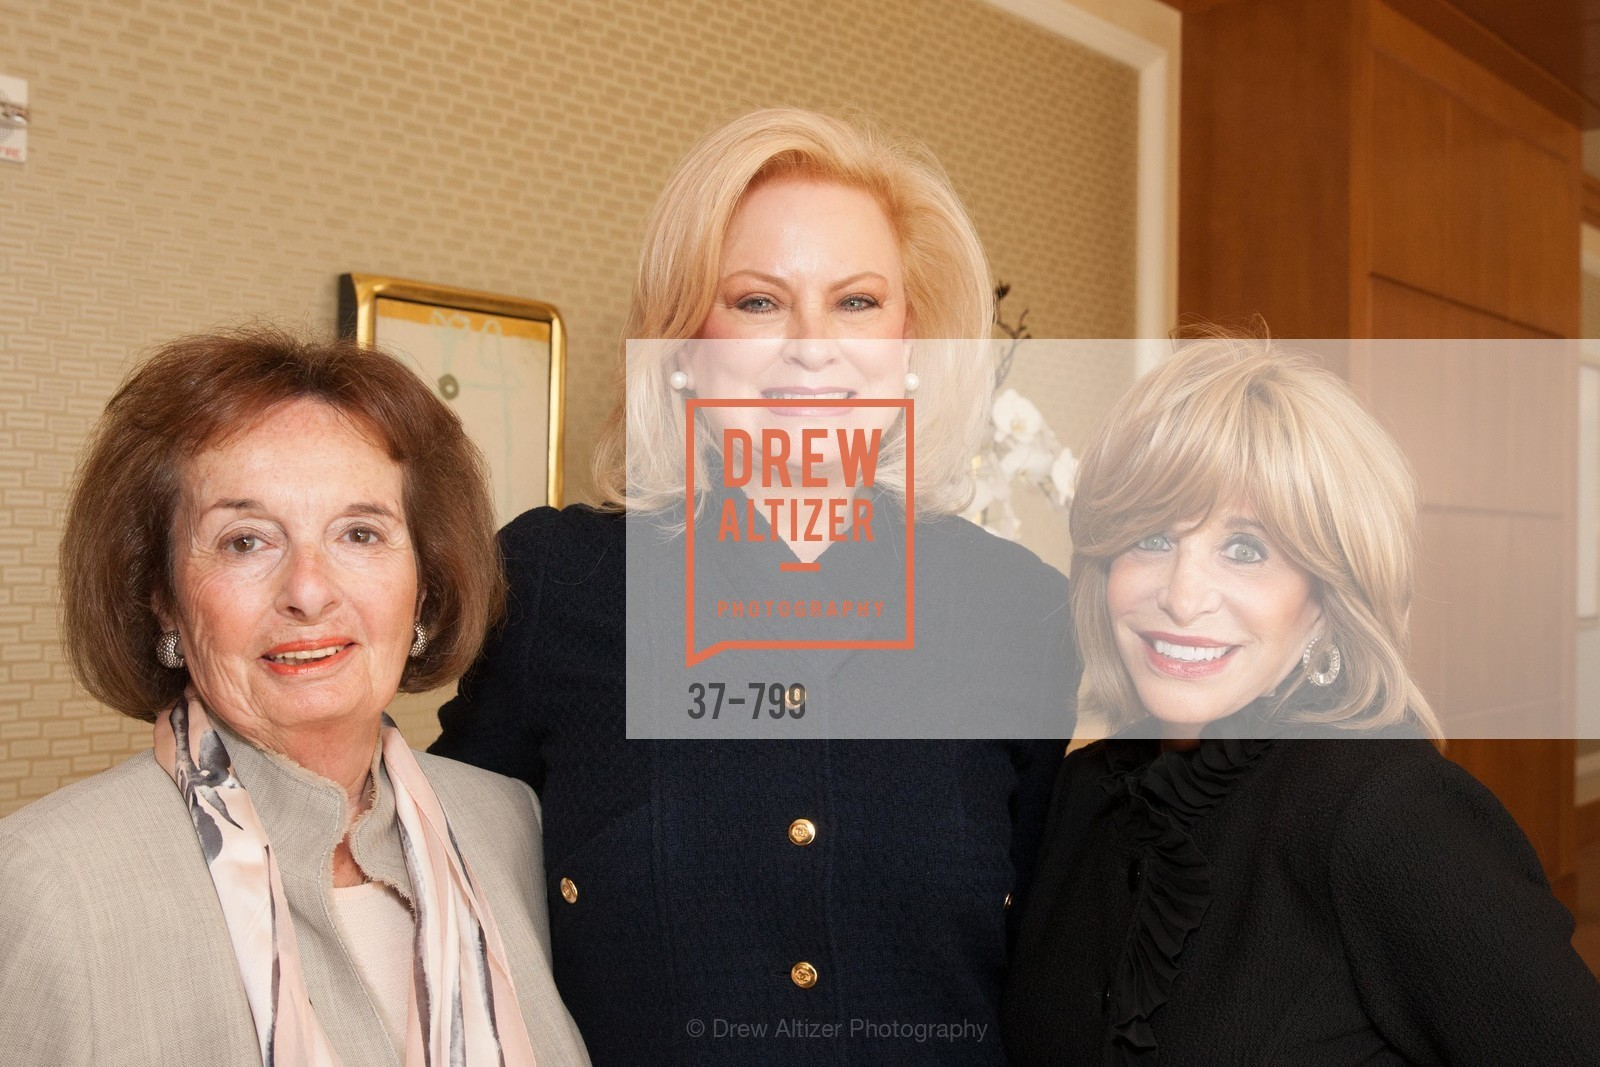 Anita Wornick, Chandra Friese, Esty Lawrie, COMPASSION & CHOICES - Empowerment Luncheon, US, April 23rd, 2015,Drew Altizer, Drew Altizer Photography, full-service agency, private events, San Francisco photographer, photographer california